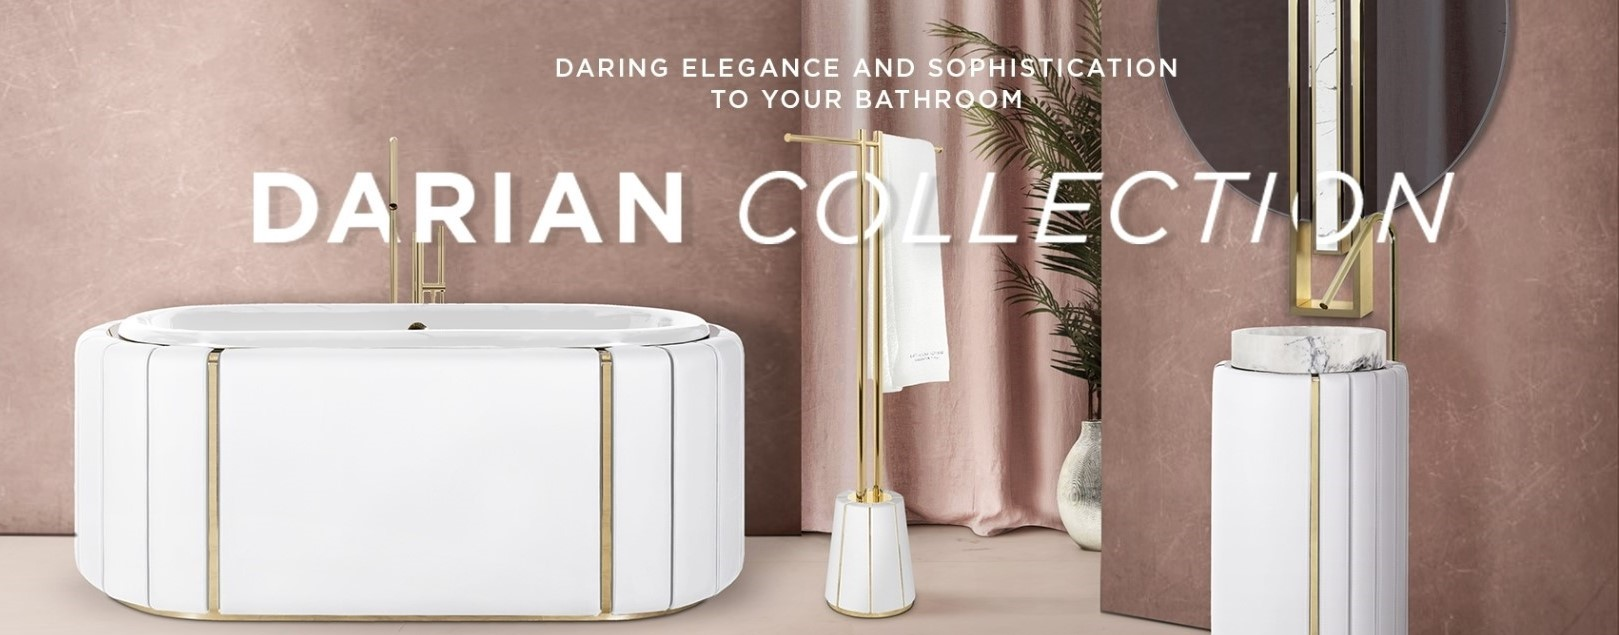 Darian Collection,bathtub, freestanding, bathroom, bathroom design, bathroom decor, leather darian collection Dare to Take Full Sophistication to Your Bathroom: Discover Darian Collection Darian Collection 4